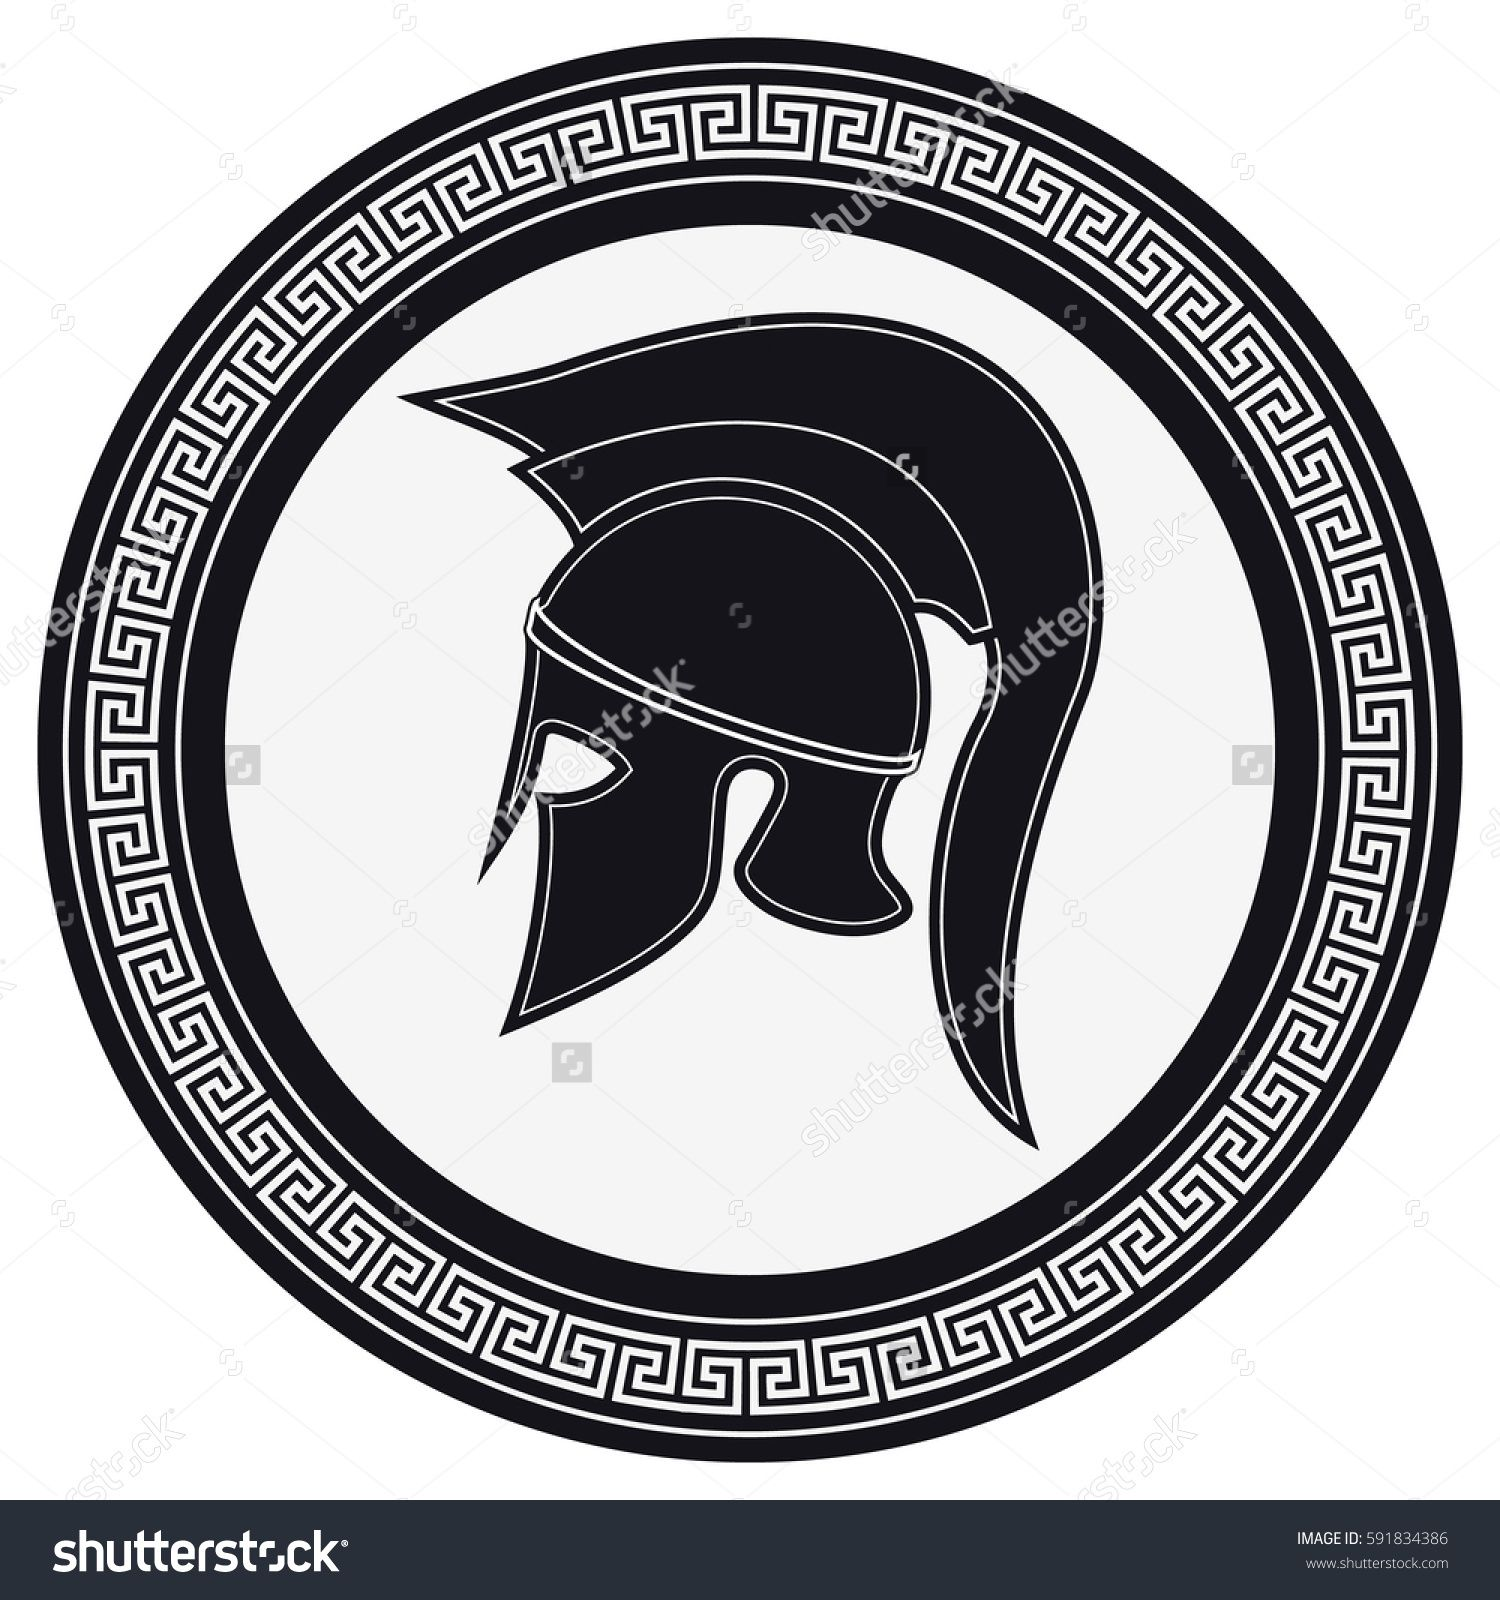 4d4f2abb5 Ancient Greek Helmet with a Crest on the Shield on a White Background.  Silhouette Spartan Helmet. Vector Roman Helmet